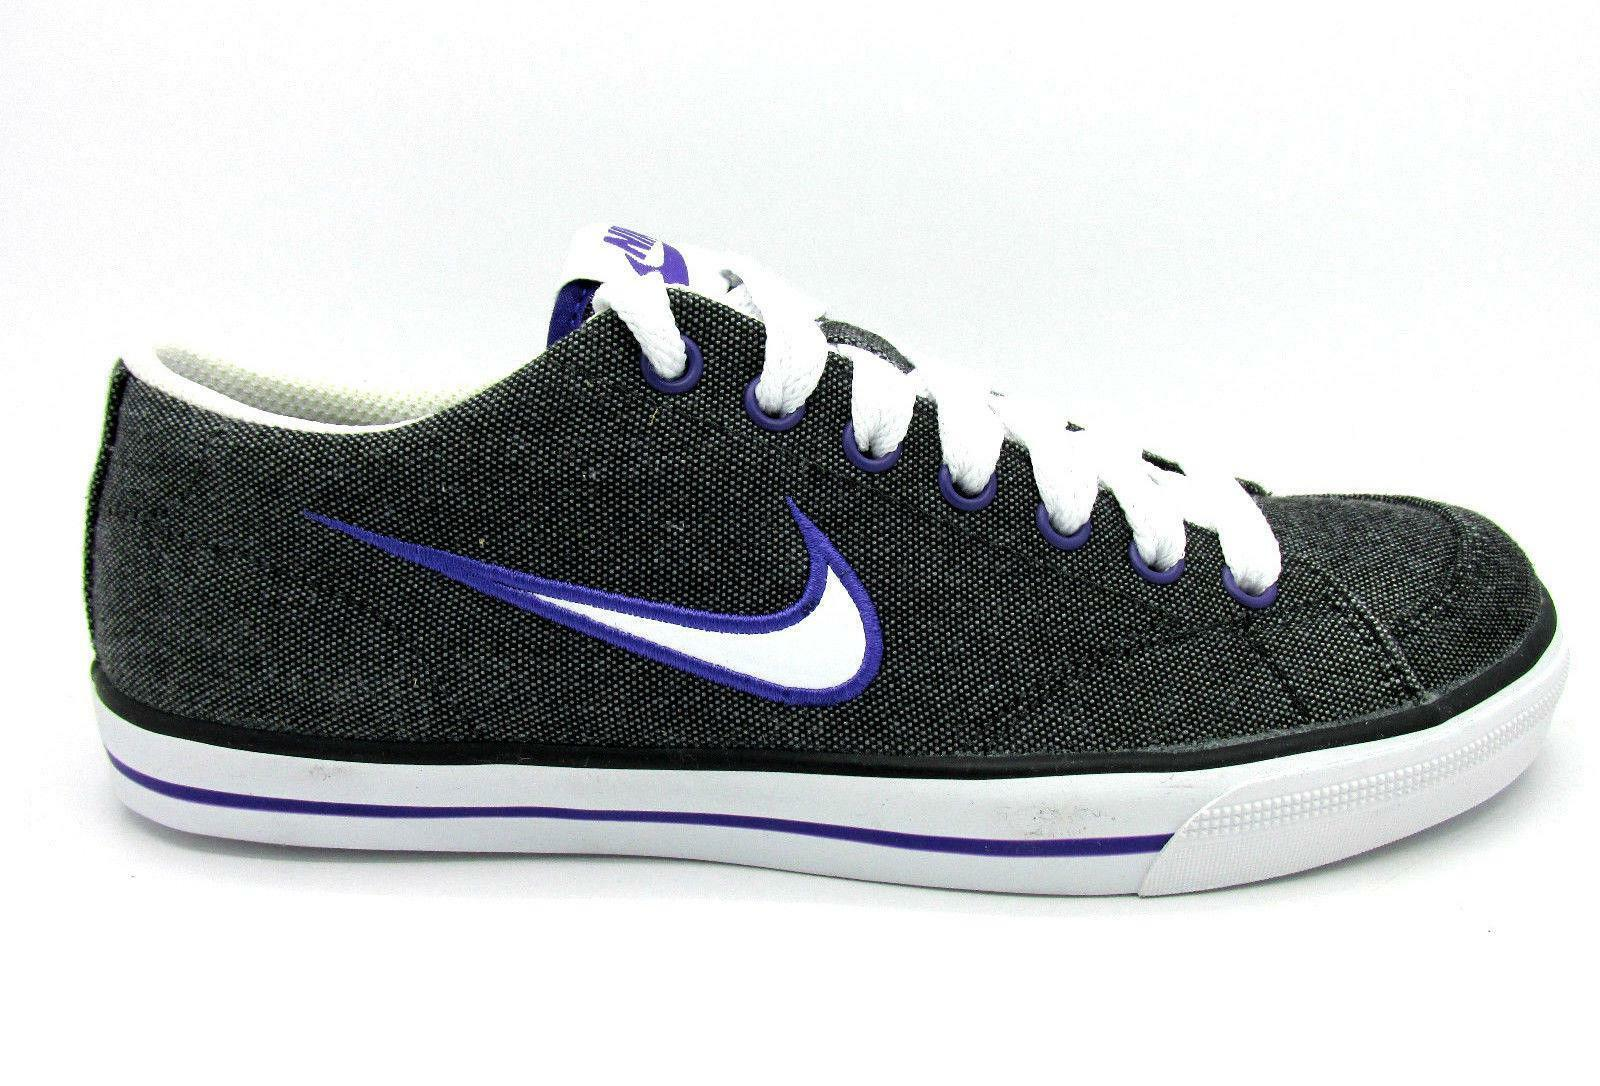 Womens NIKE CAPRI Black Canvas Trainers 314956 025 US 5 New shoes for men and women, limited time discount